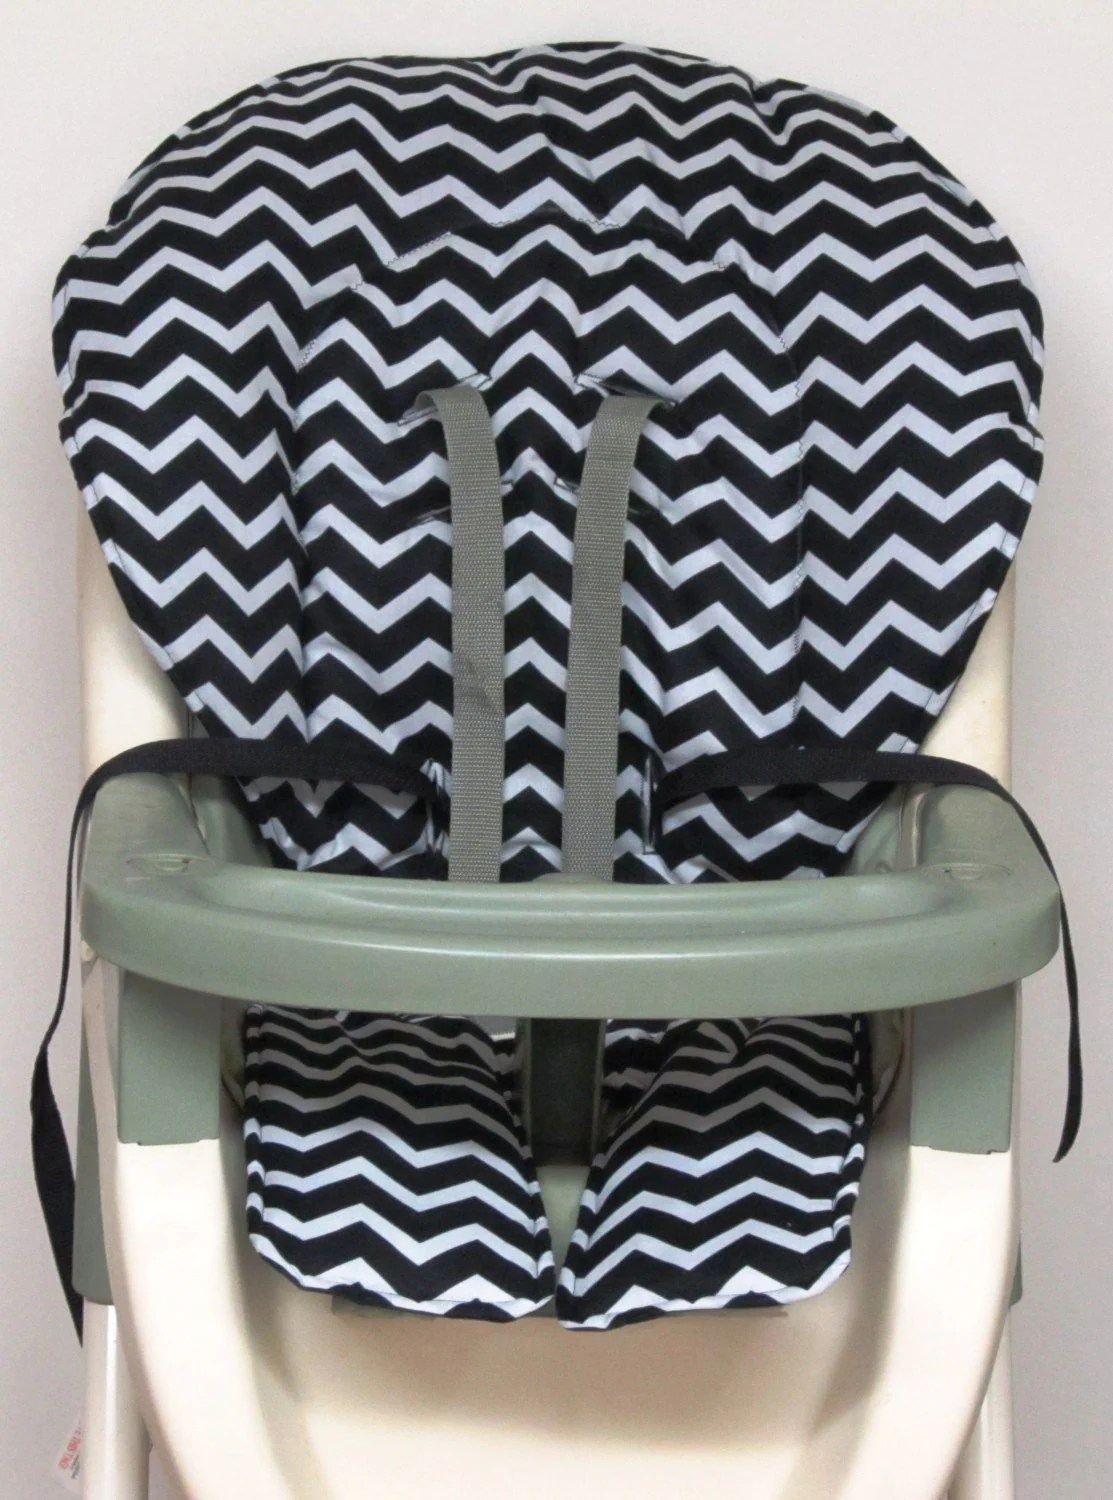 Chair Pad Covers Graco High Chair Cover Pad Replacement Black And Pale Gray